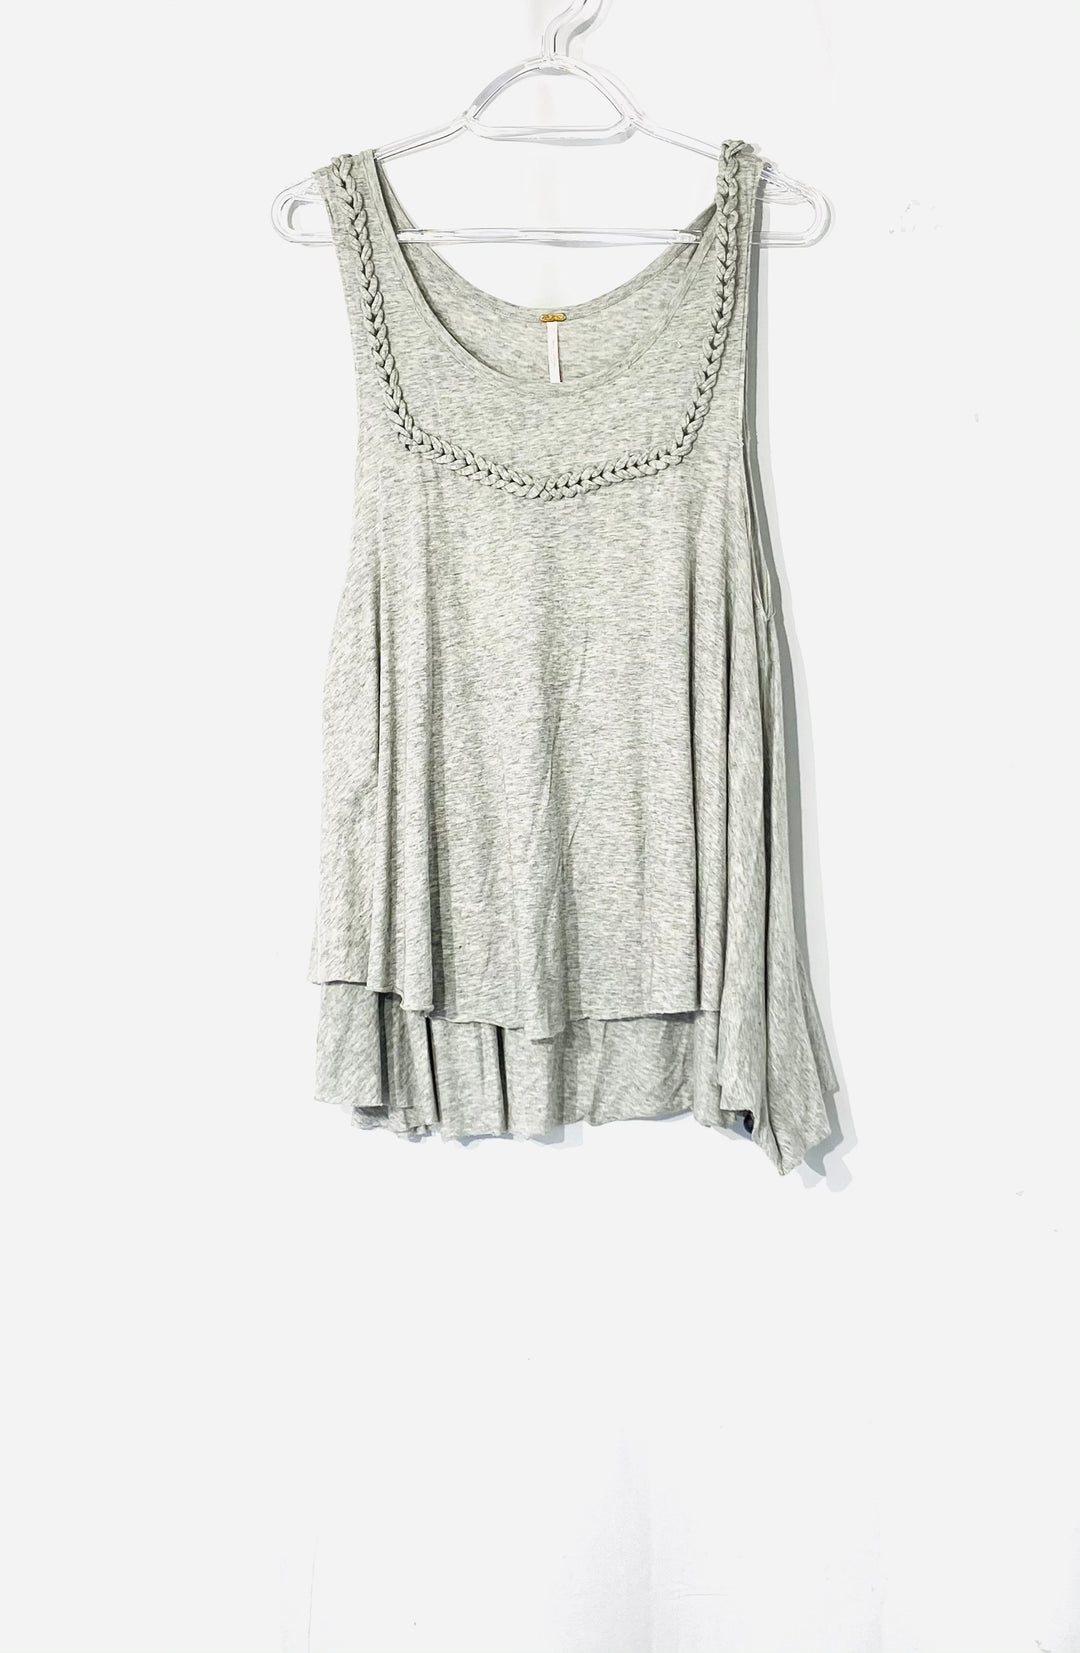 Primary Photo - BRAND: FREE PEOPLE <BR>STYLE: TOP SLEEVELESS <BR>COLOR: GREY <BR>SIZE: L <BR>SKU: 262-26241-42707